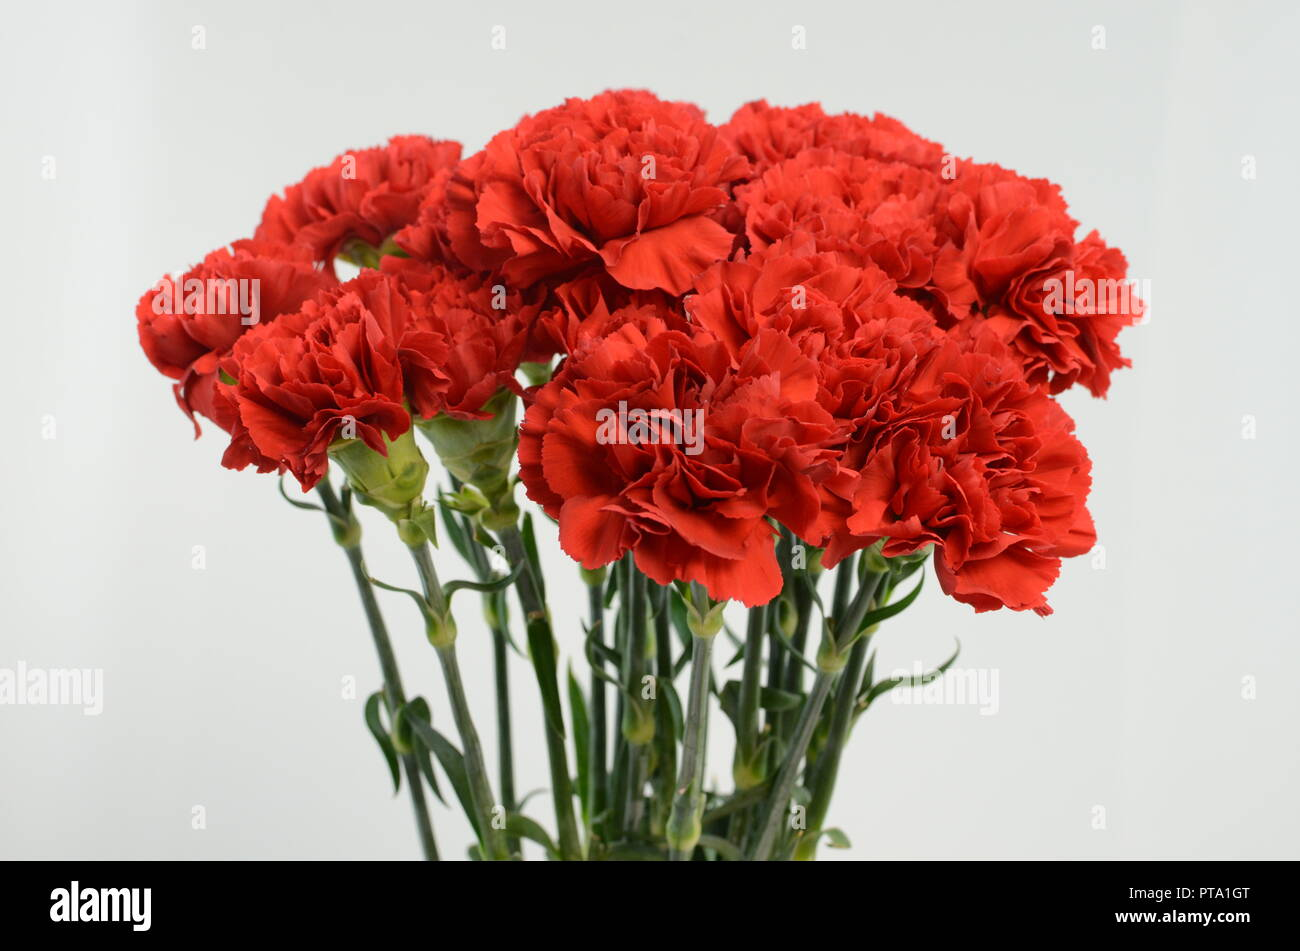 Beautiful Red Carnation Flower Isolated On White Background Stock